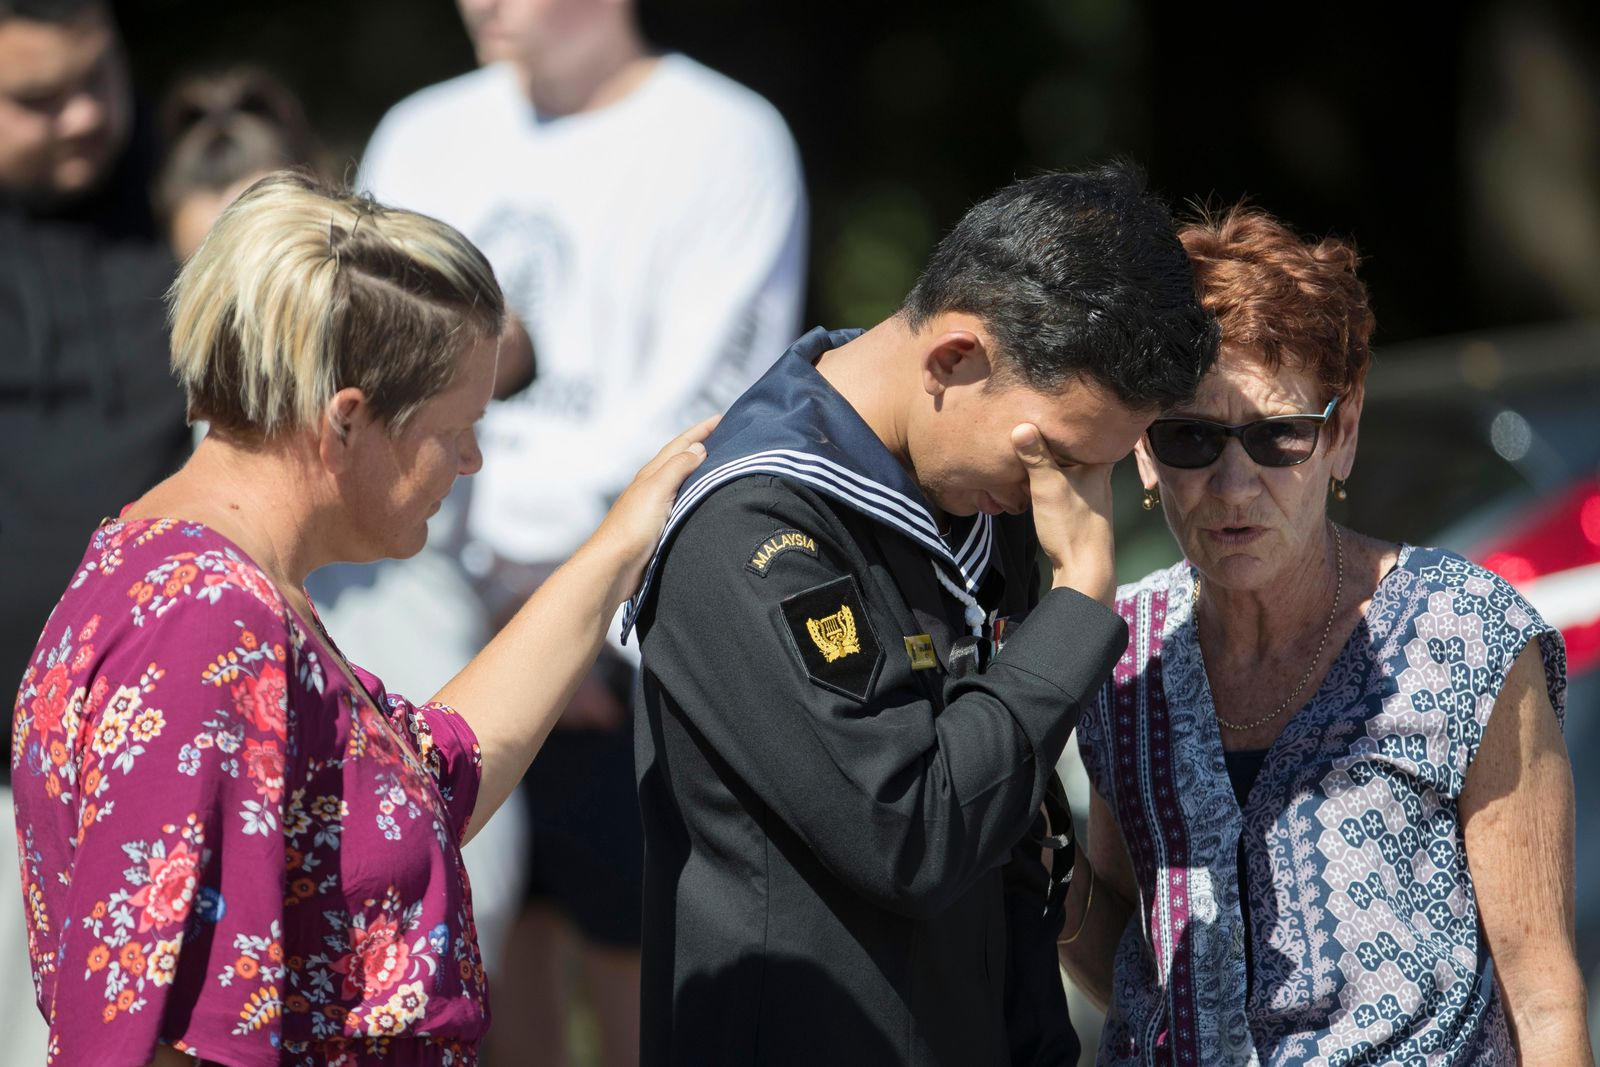 Abdul Iskandar, a sailor of Malaysian Royal Navy, cries after offering flowers outside the Al Noor mosque in Christchurch, New Zealand, Tuesday, March 19, 2019. (AP Photo/Vincent Thian)